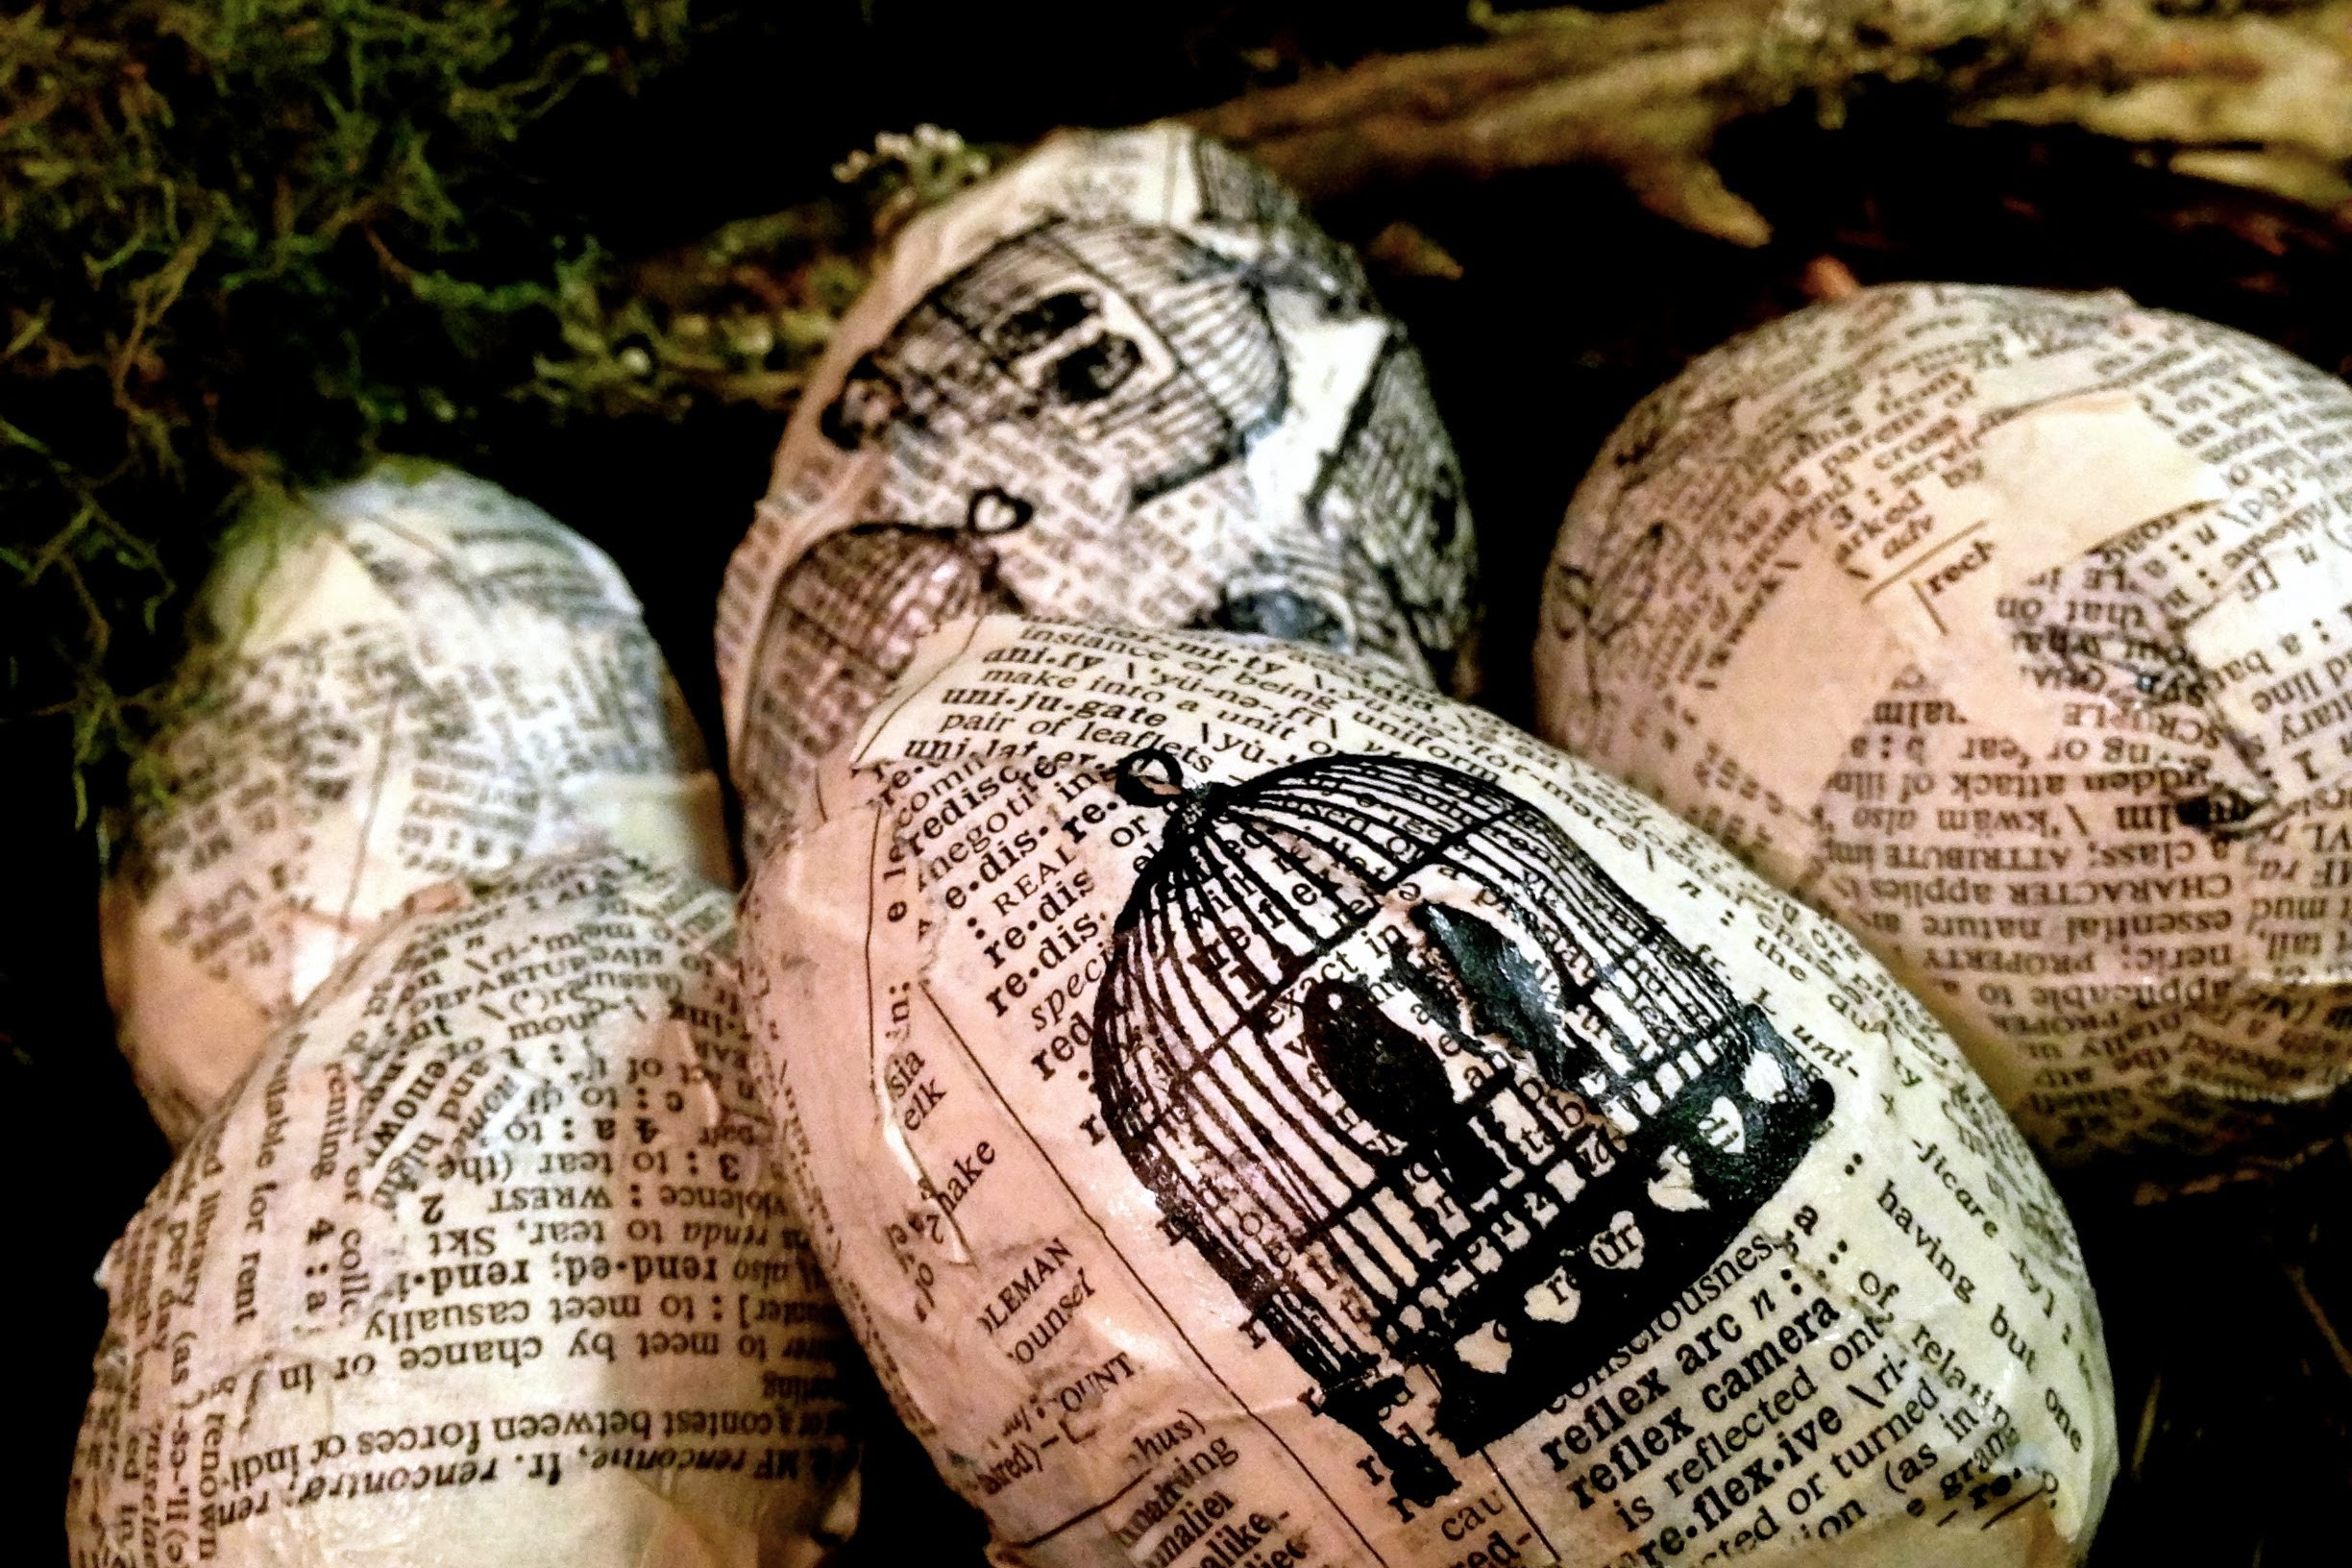 How to DIY Decorate your Easter Egg Chic Mod Podge decoupage